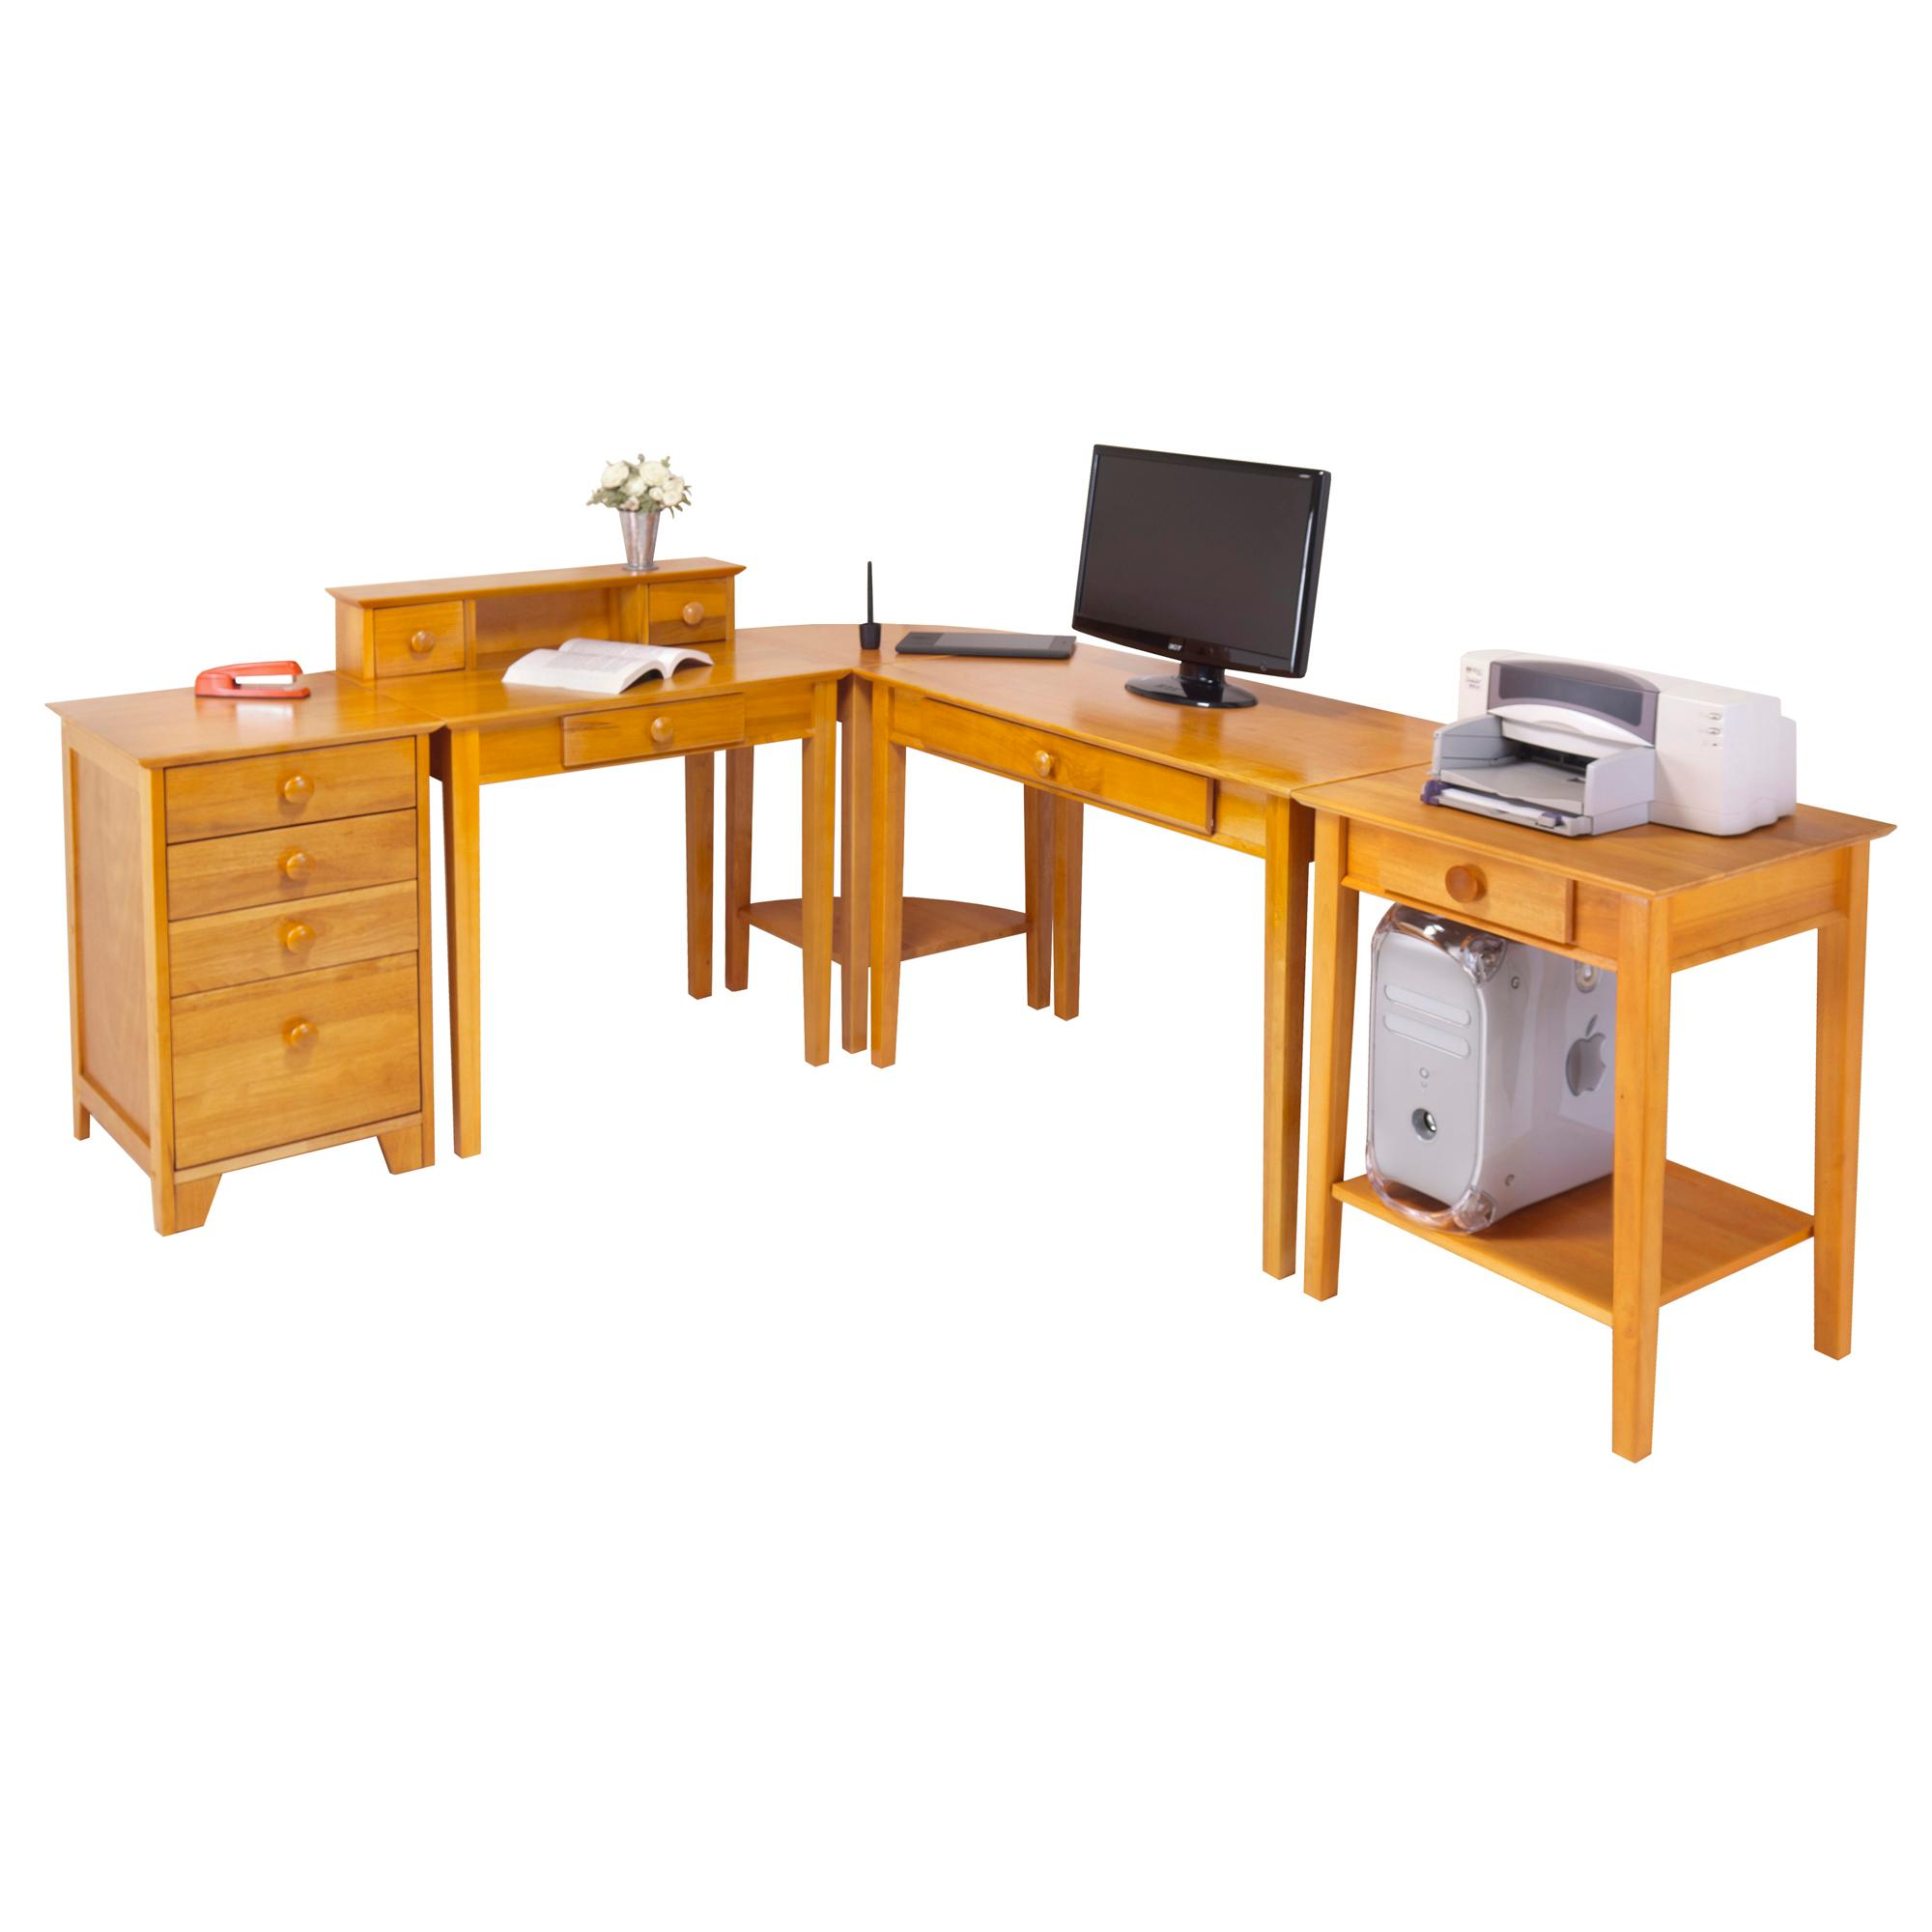 Winsome studio home office furniture set kitchen dining Home furniture on amazon